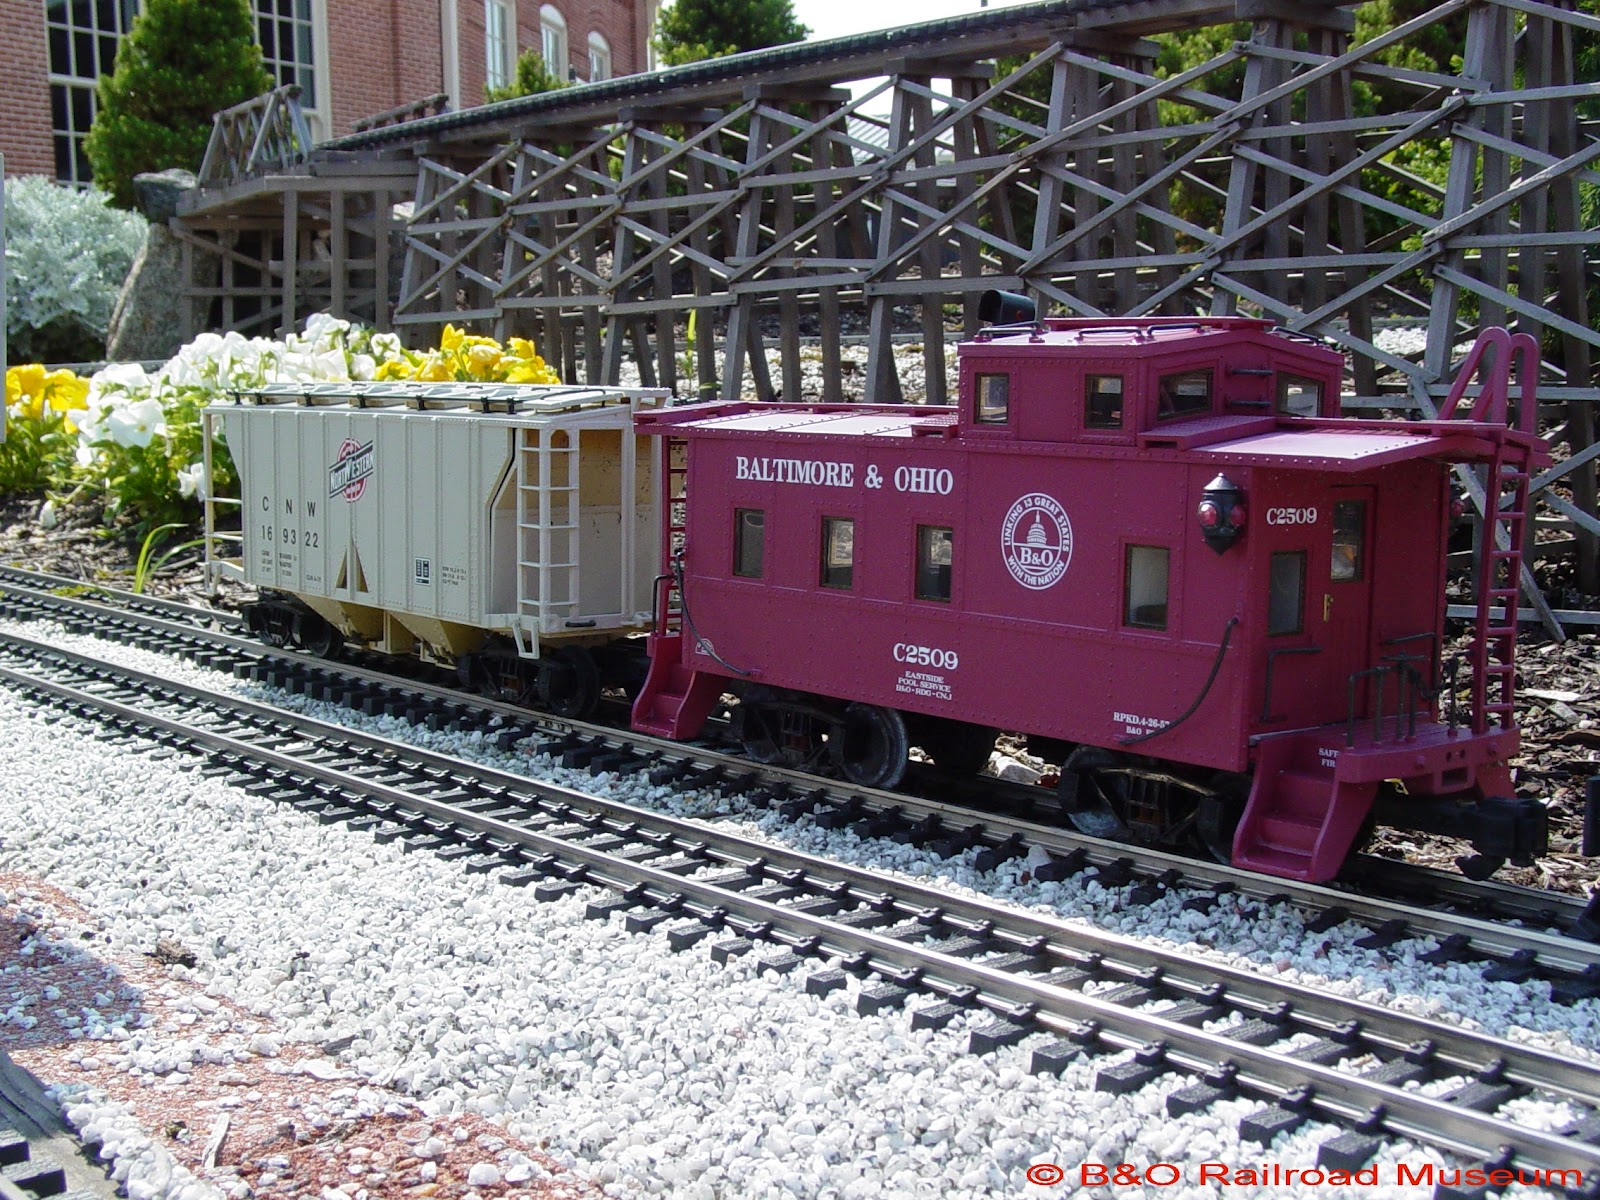 Ellicott city scale model railroad association